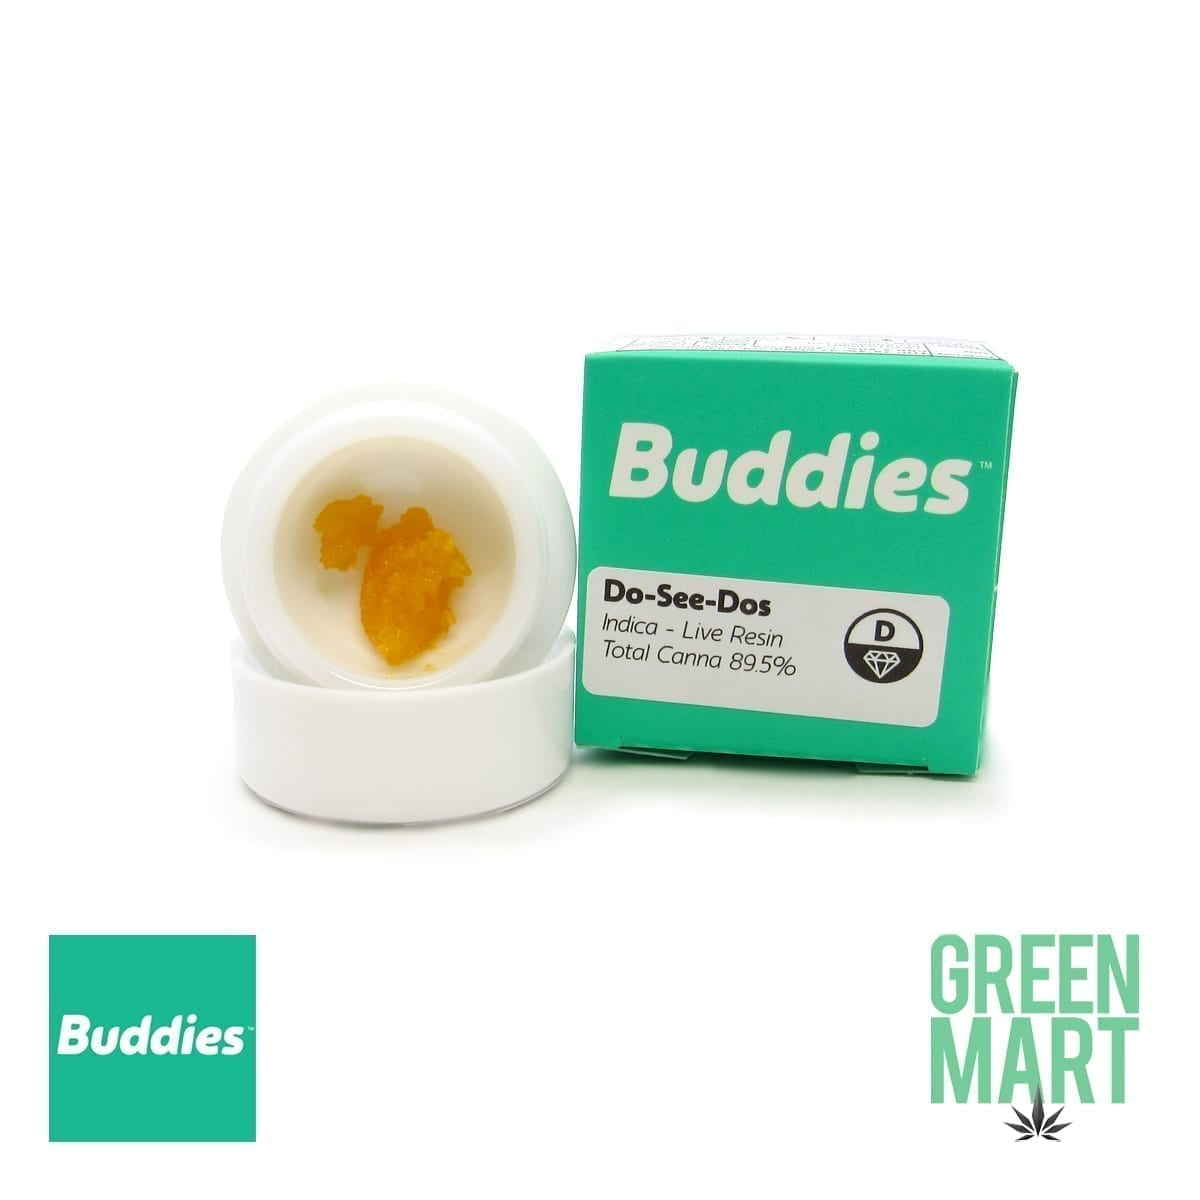 Buddies Dab - Do-See-Dos